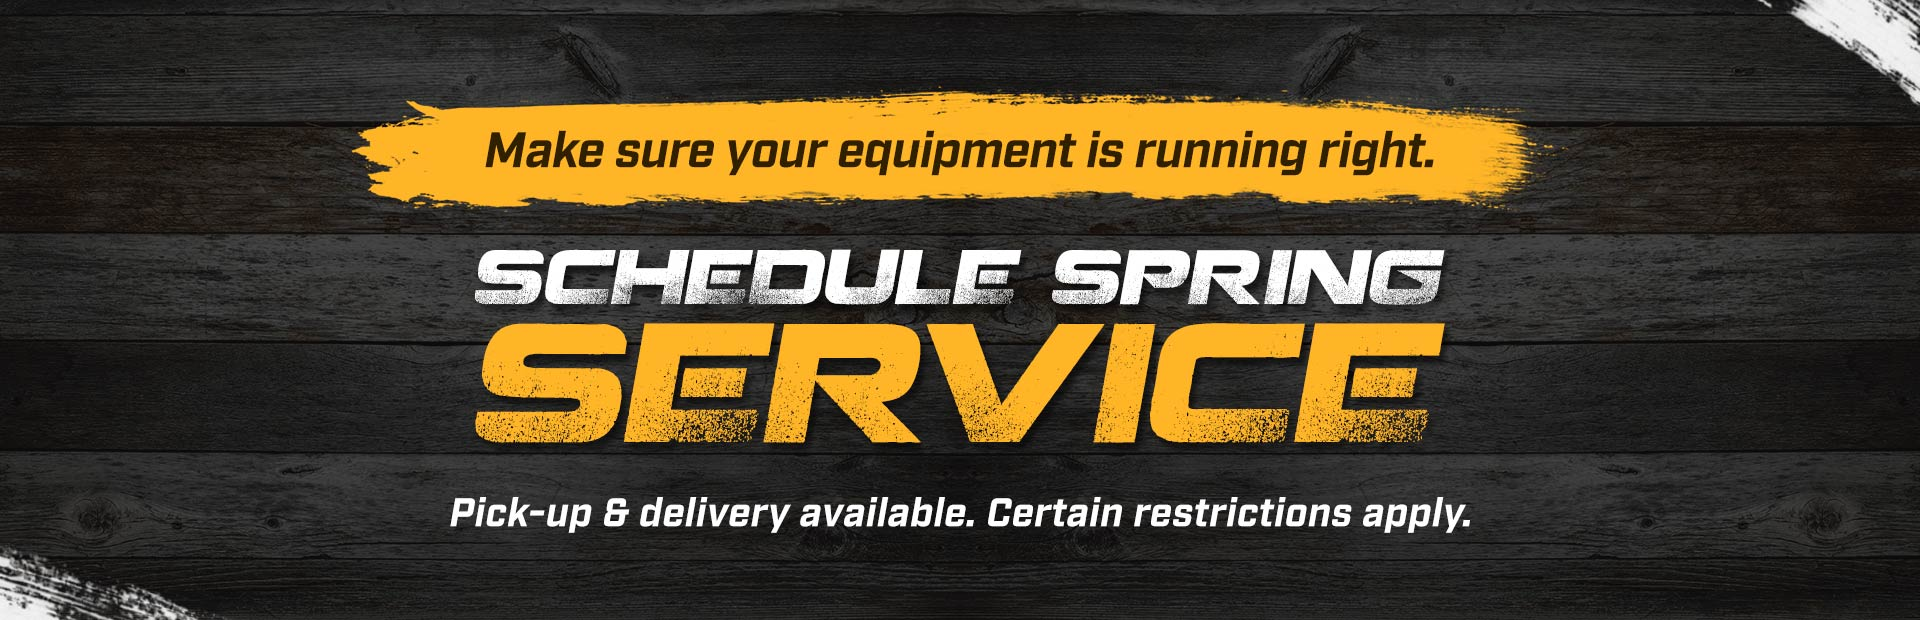 Make sure your equipment is running right. Schedule spring service.